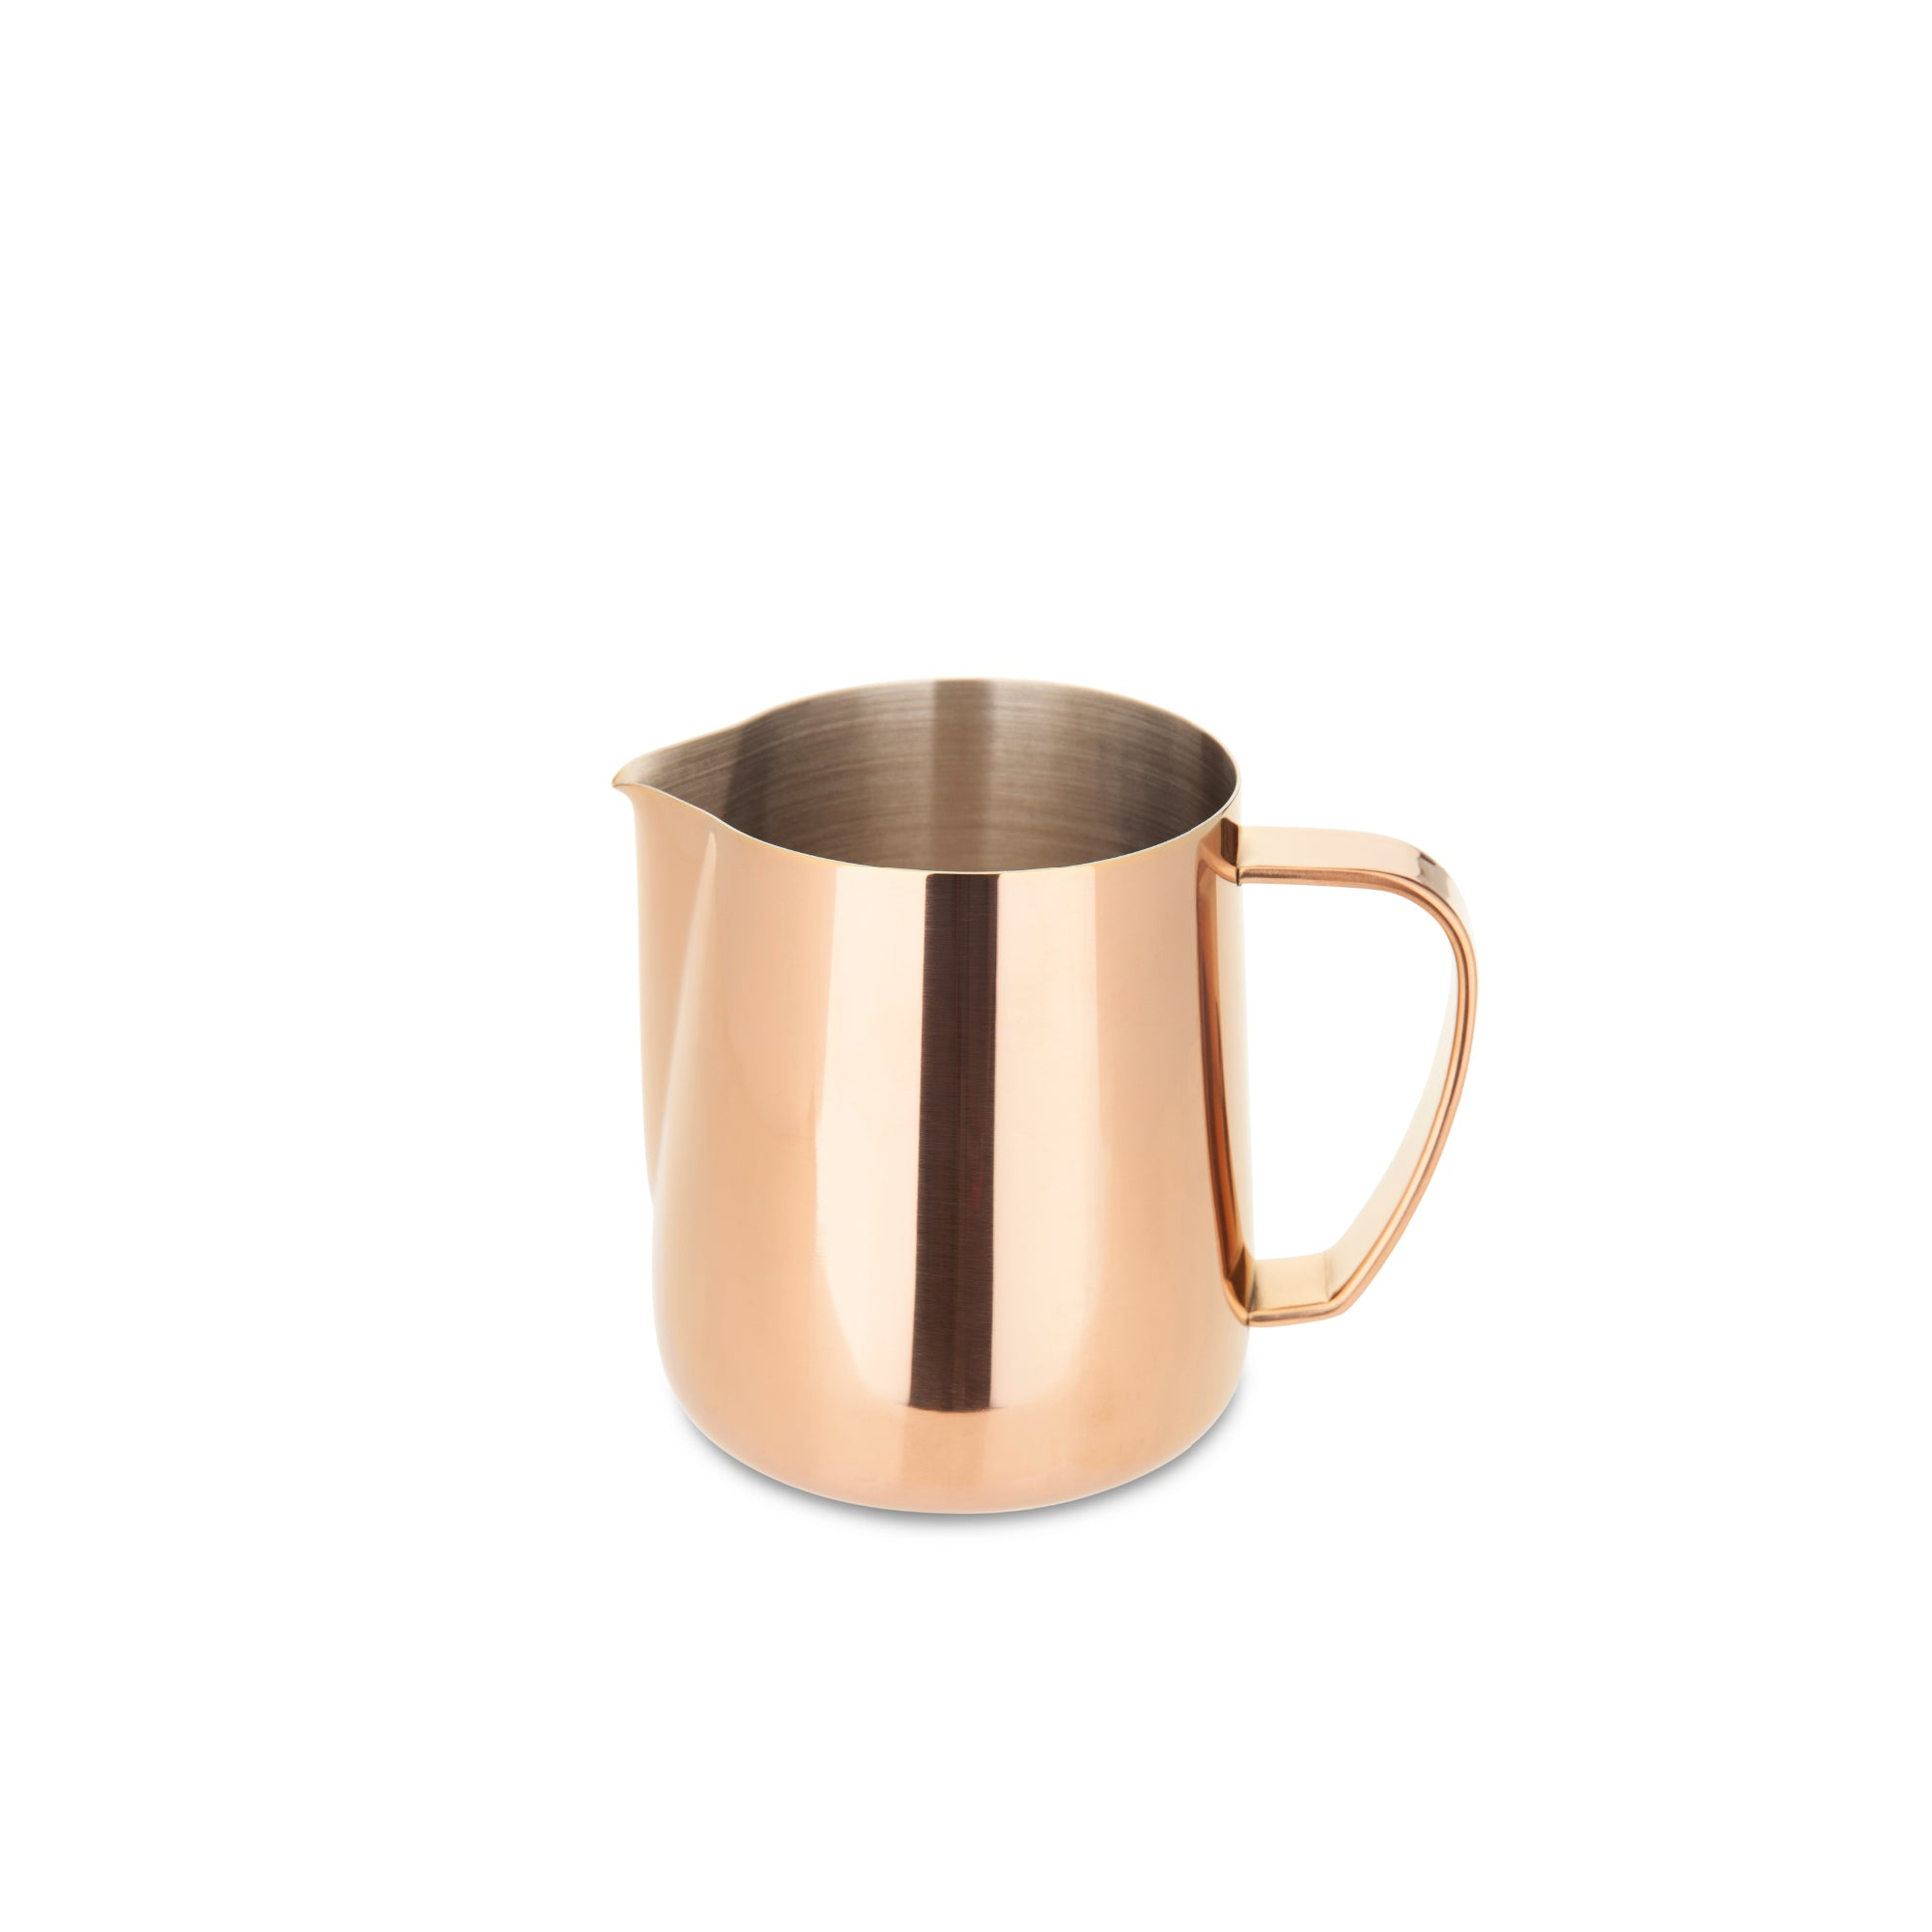 EspressoWorks Stainless Steel Milk Frothing Jug - Rose Gold (350ml)